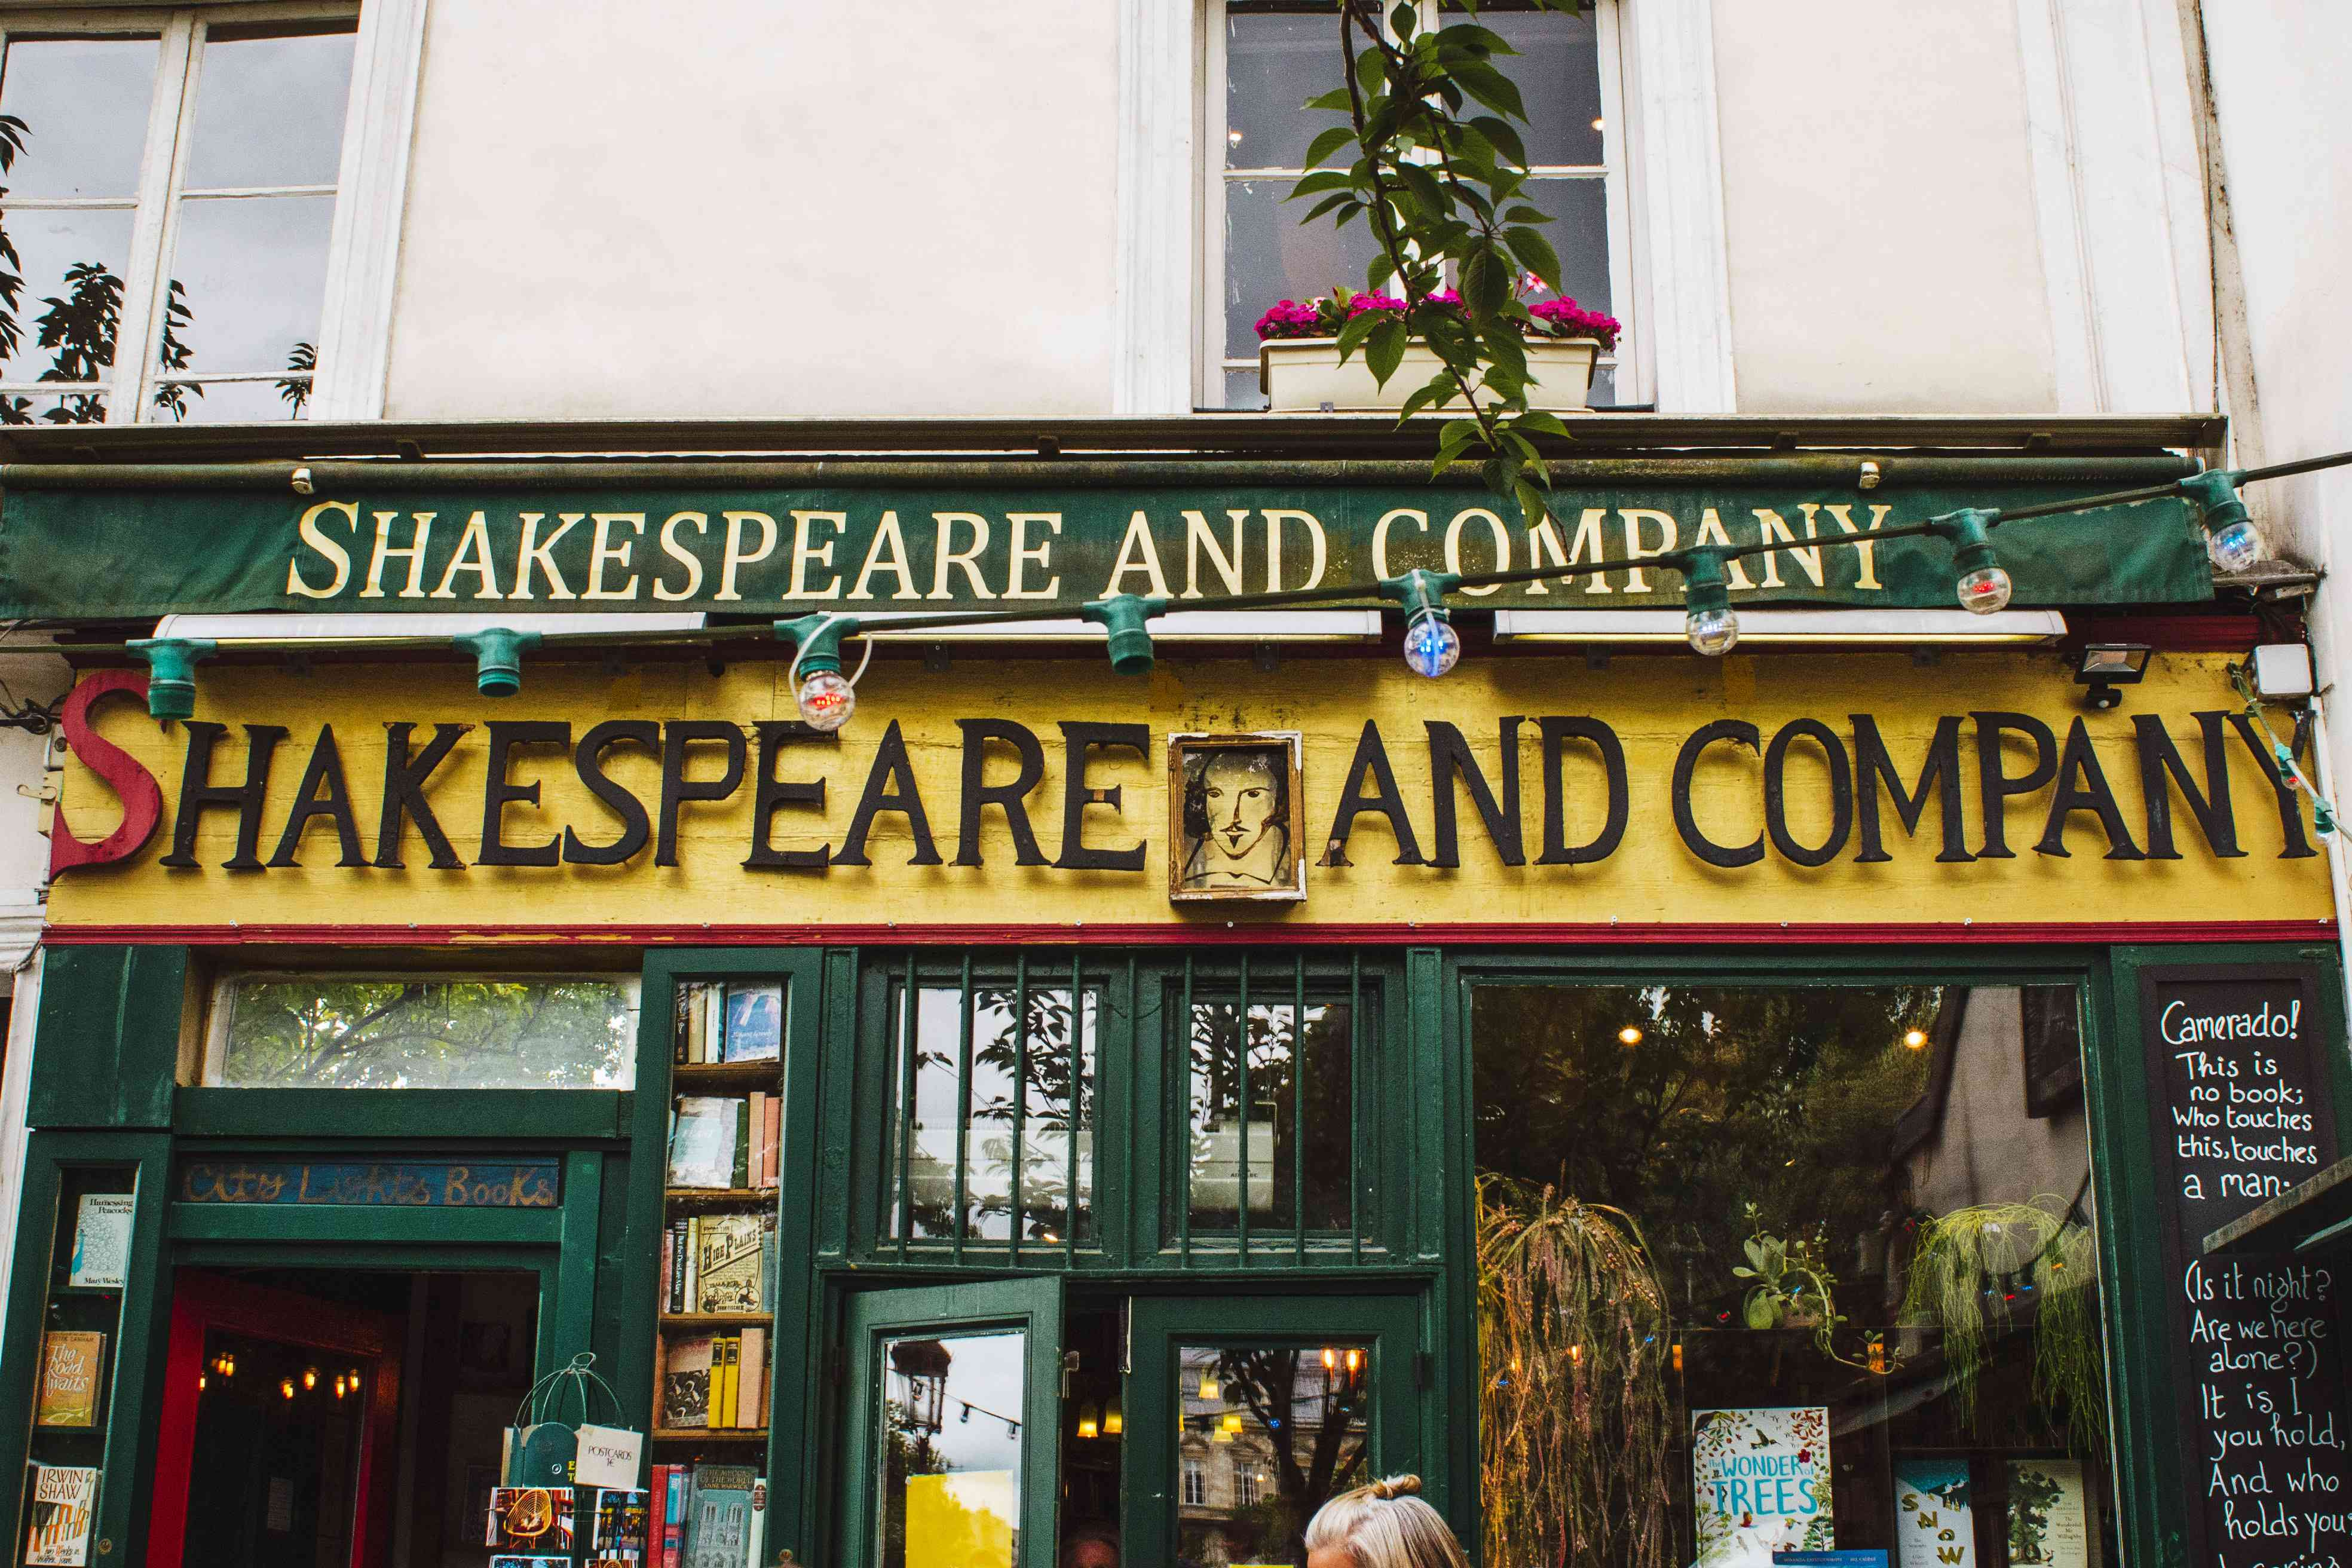 Shakespeare and COmpnay bookstore exterior